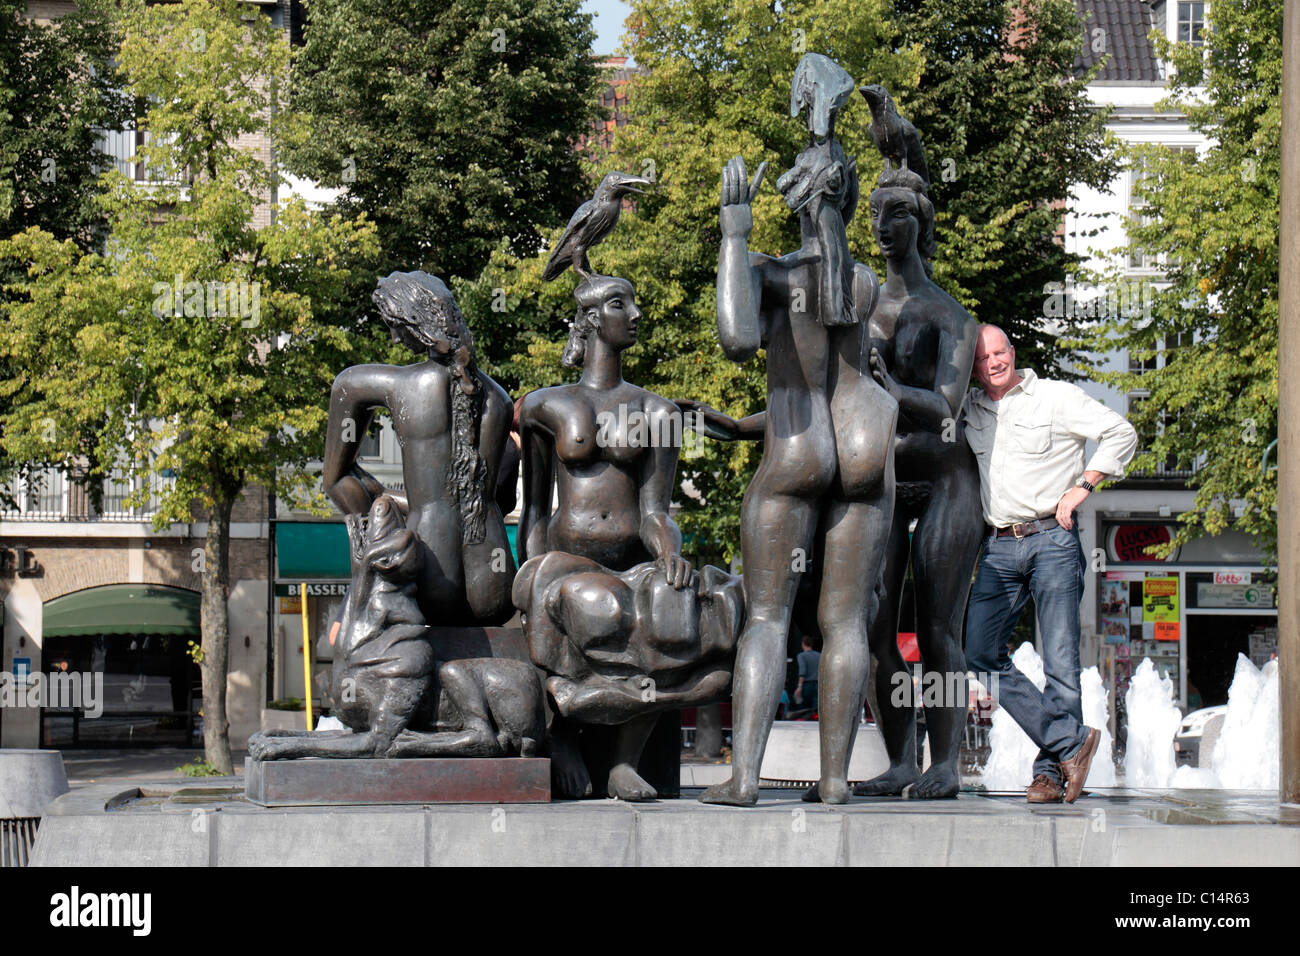 A tourist poses on The Bathing Ladies sculpture, part of main fountain in the Zand Square, Bruges (Brugge), Belgium - Stock Image